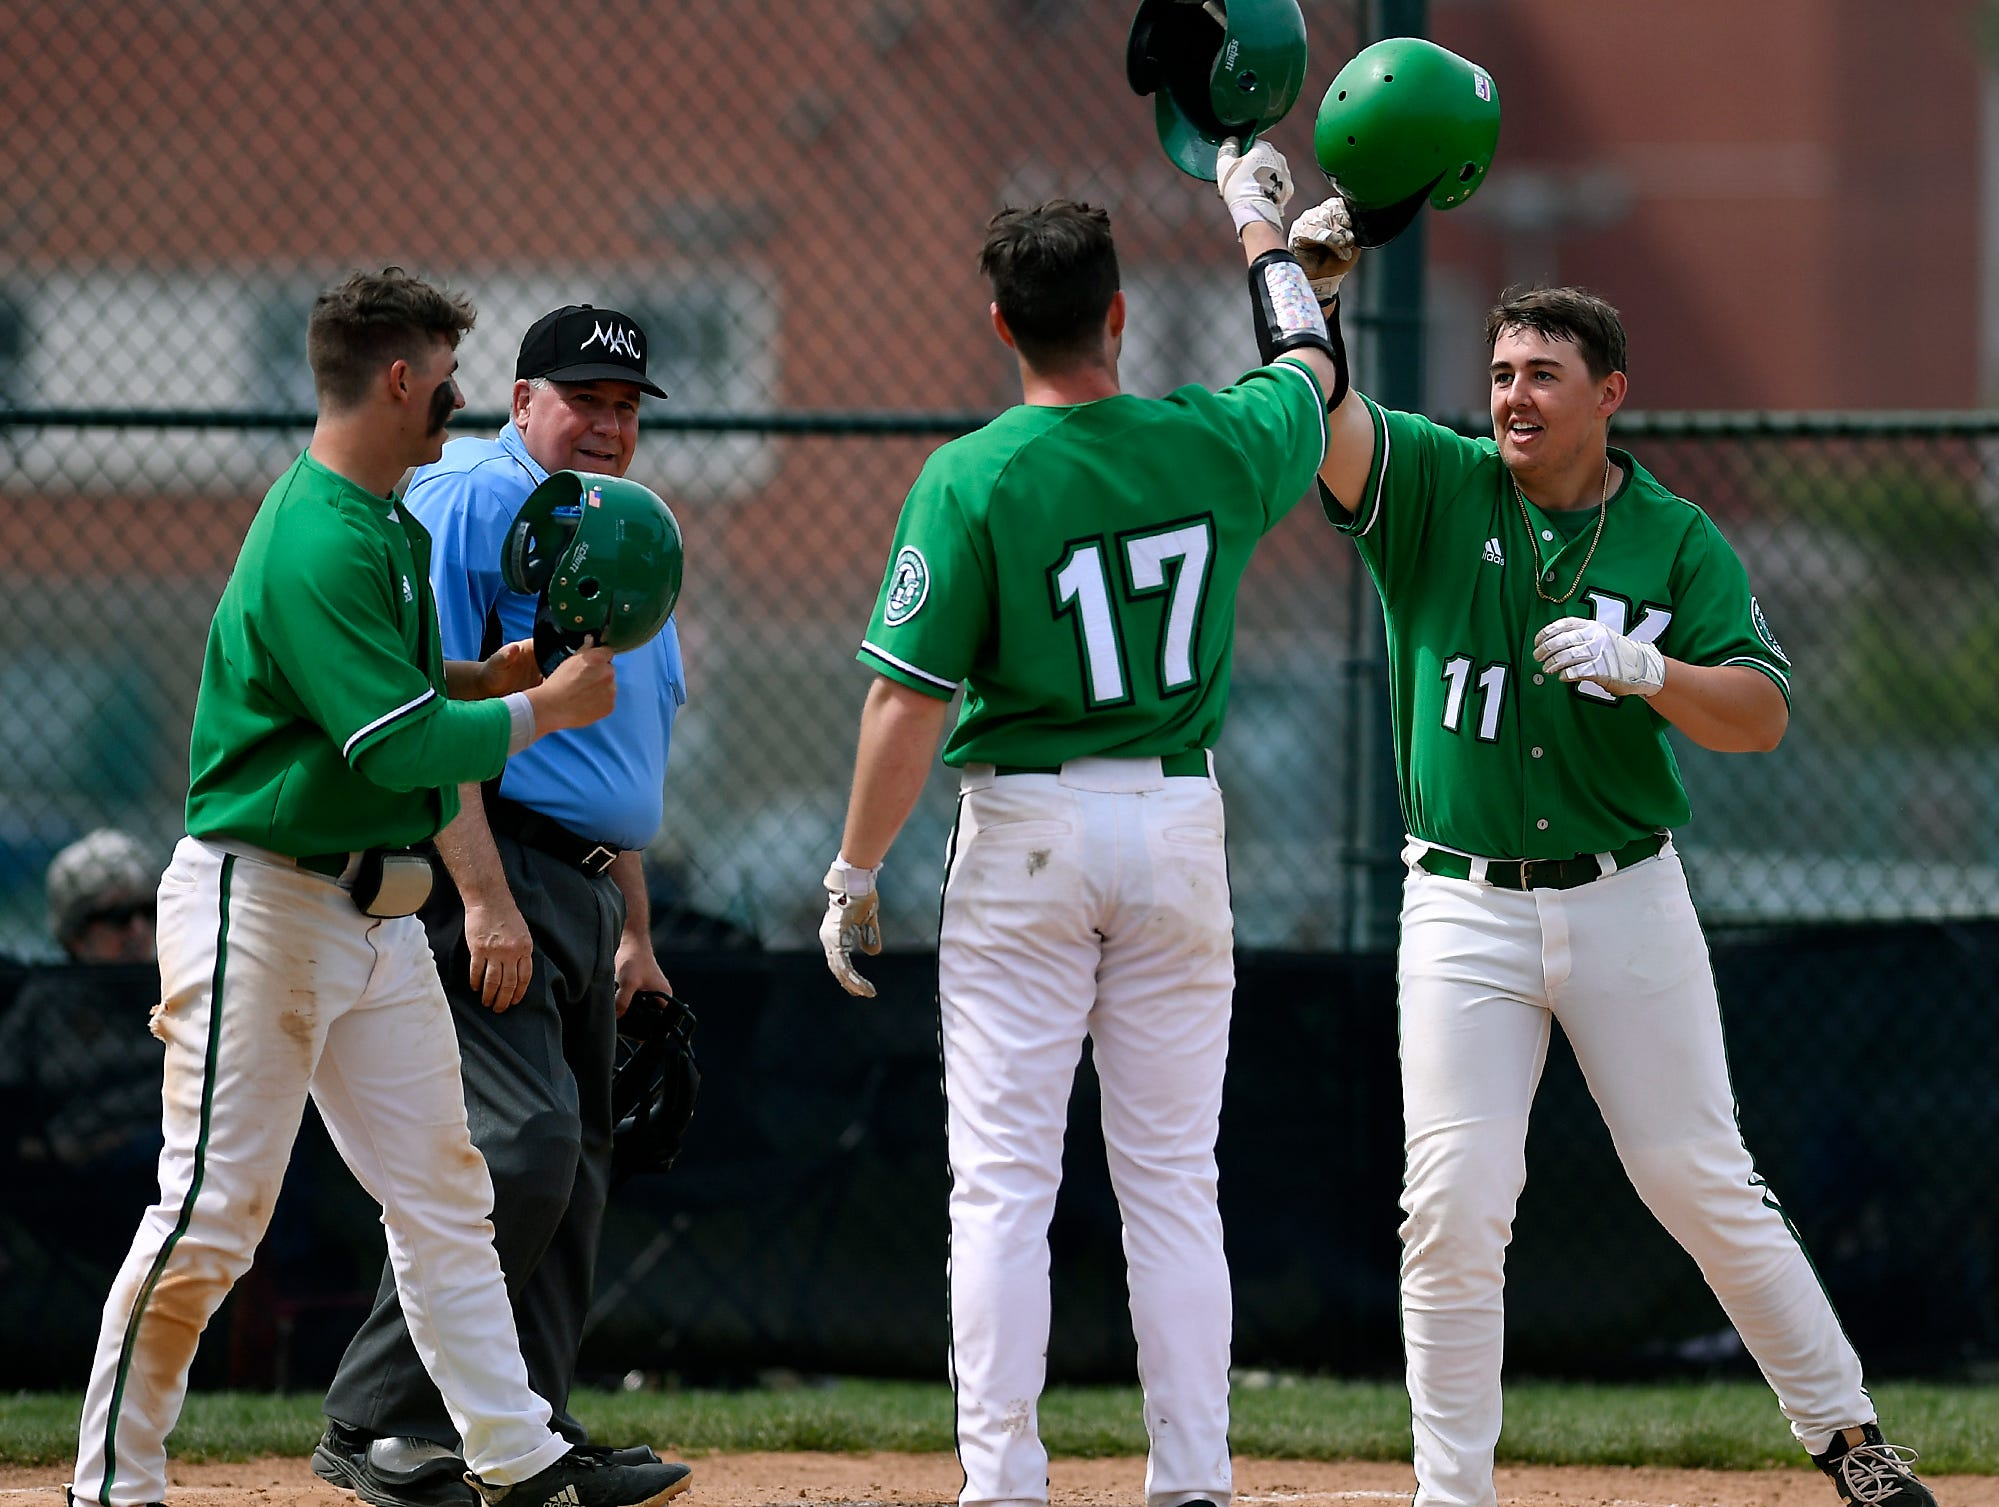 Jack Berry of York College, right, is greeted at the plate by Austin Delinger, left, and Grant Oberholtzer, after smacking a three-run homerun against St. Mary's in the fourth inning, Sunday, April 7, 2019.John A. Pavoncello photo